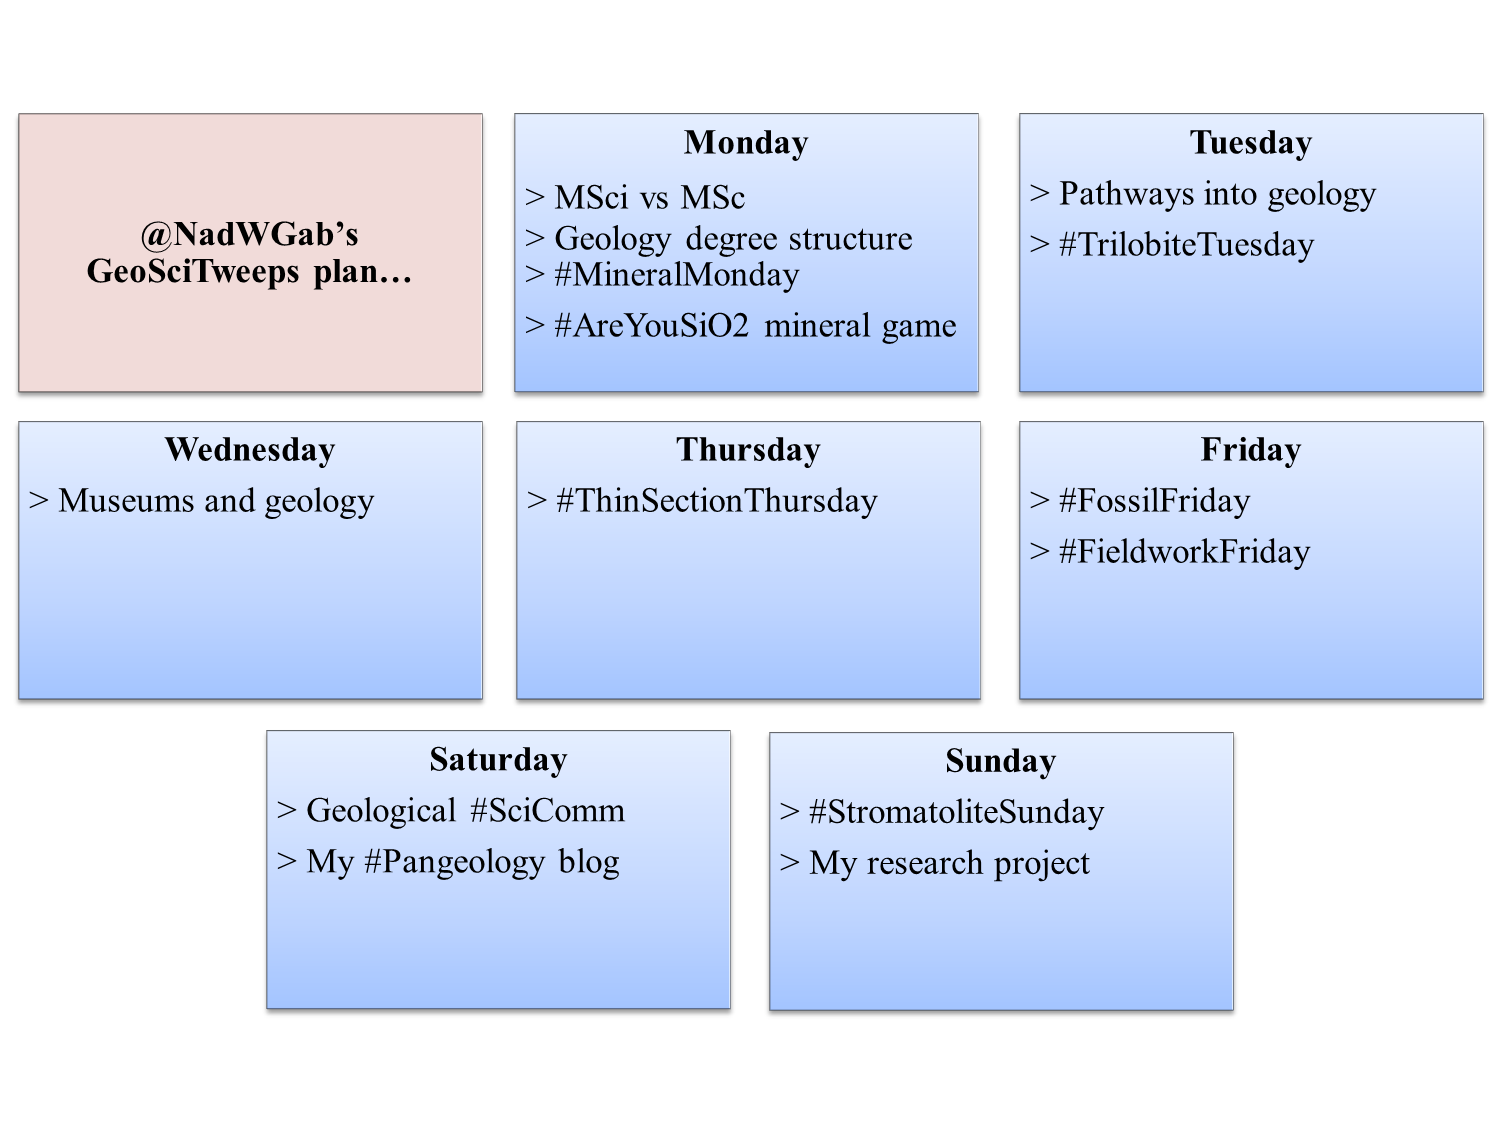 Here's my plan for the week. I'll also tweet a summary of my lectures to give you an idea of what it's like to be an @ES_UCL student https://t.co/jmJdbOnPEQ